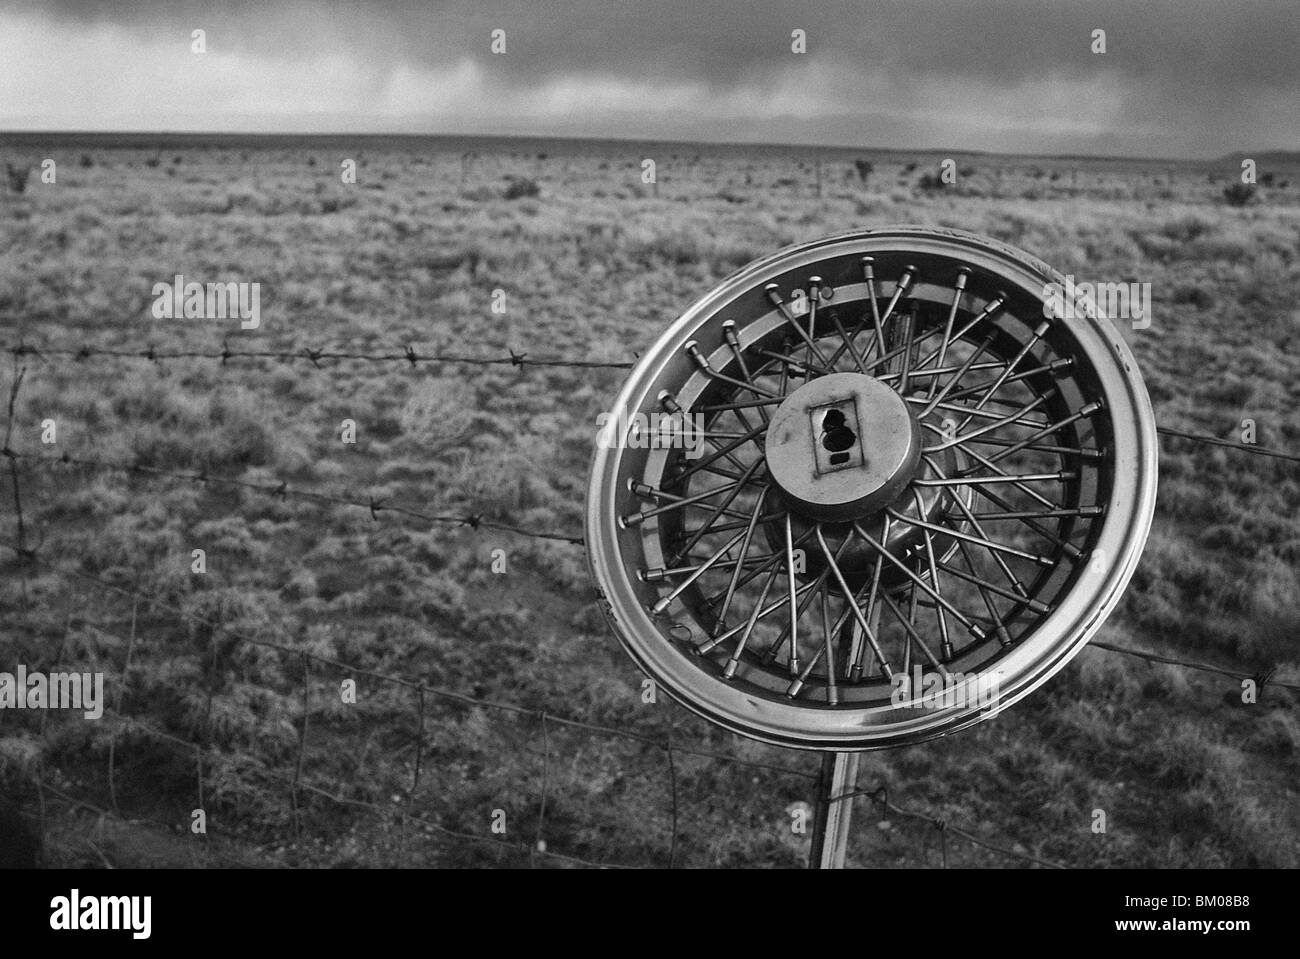 a hubcap on a barbed wire fence with the southwest desert landscape, santa fe, new mexico - Stock Image